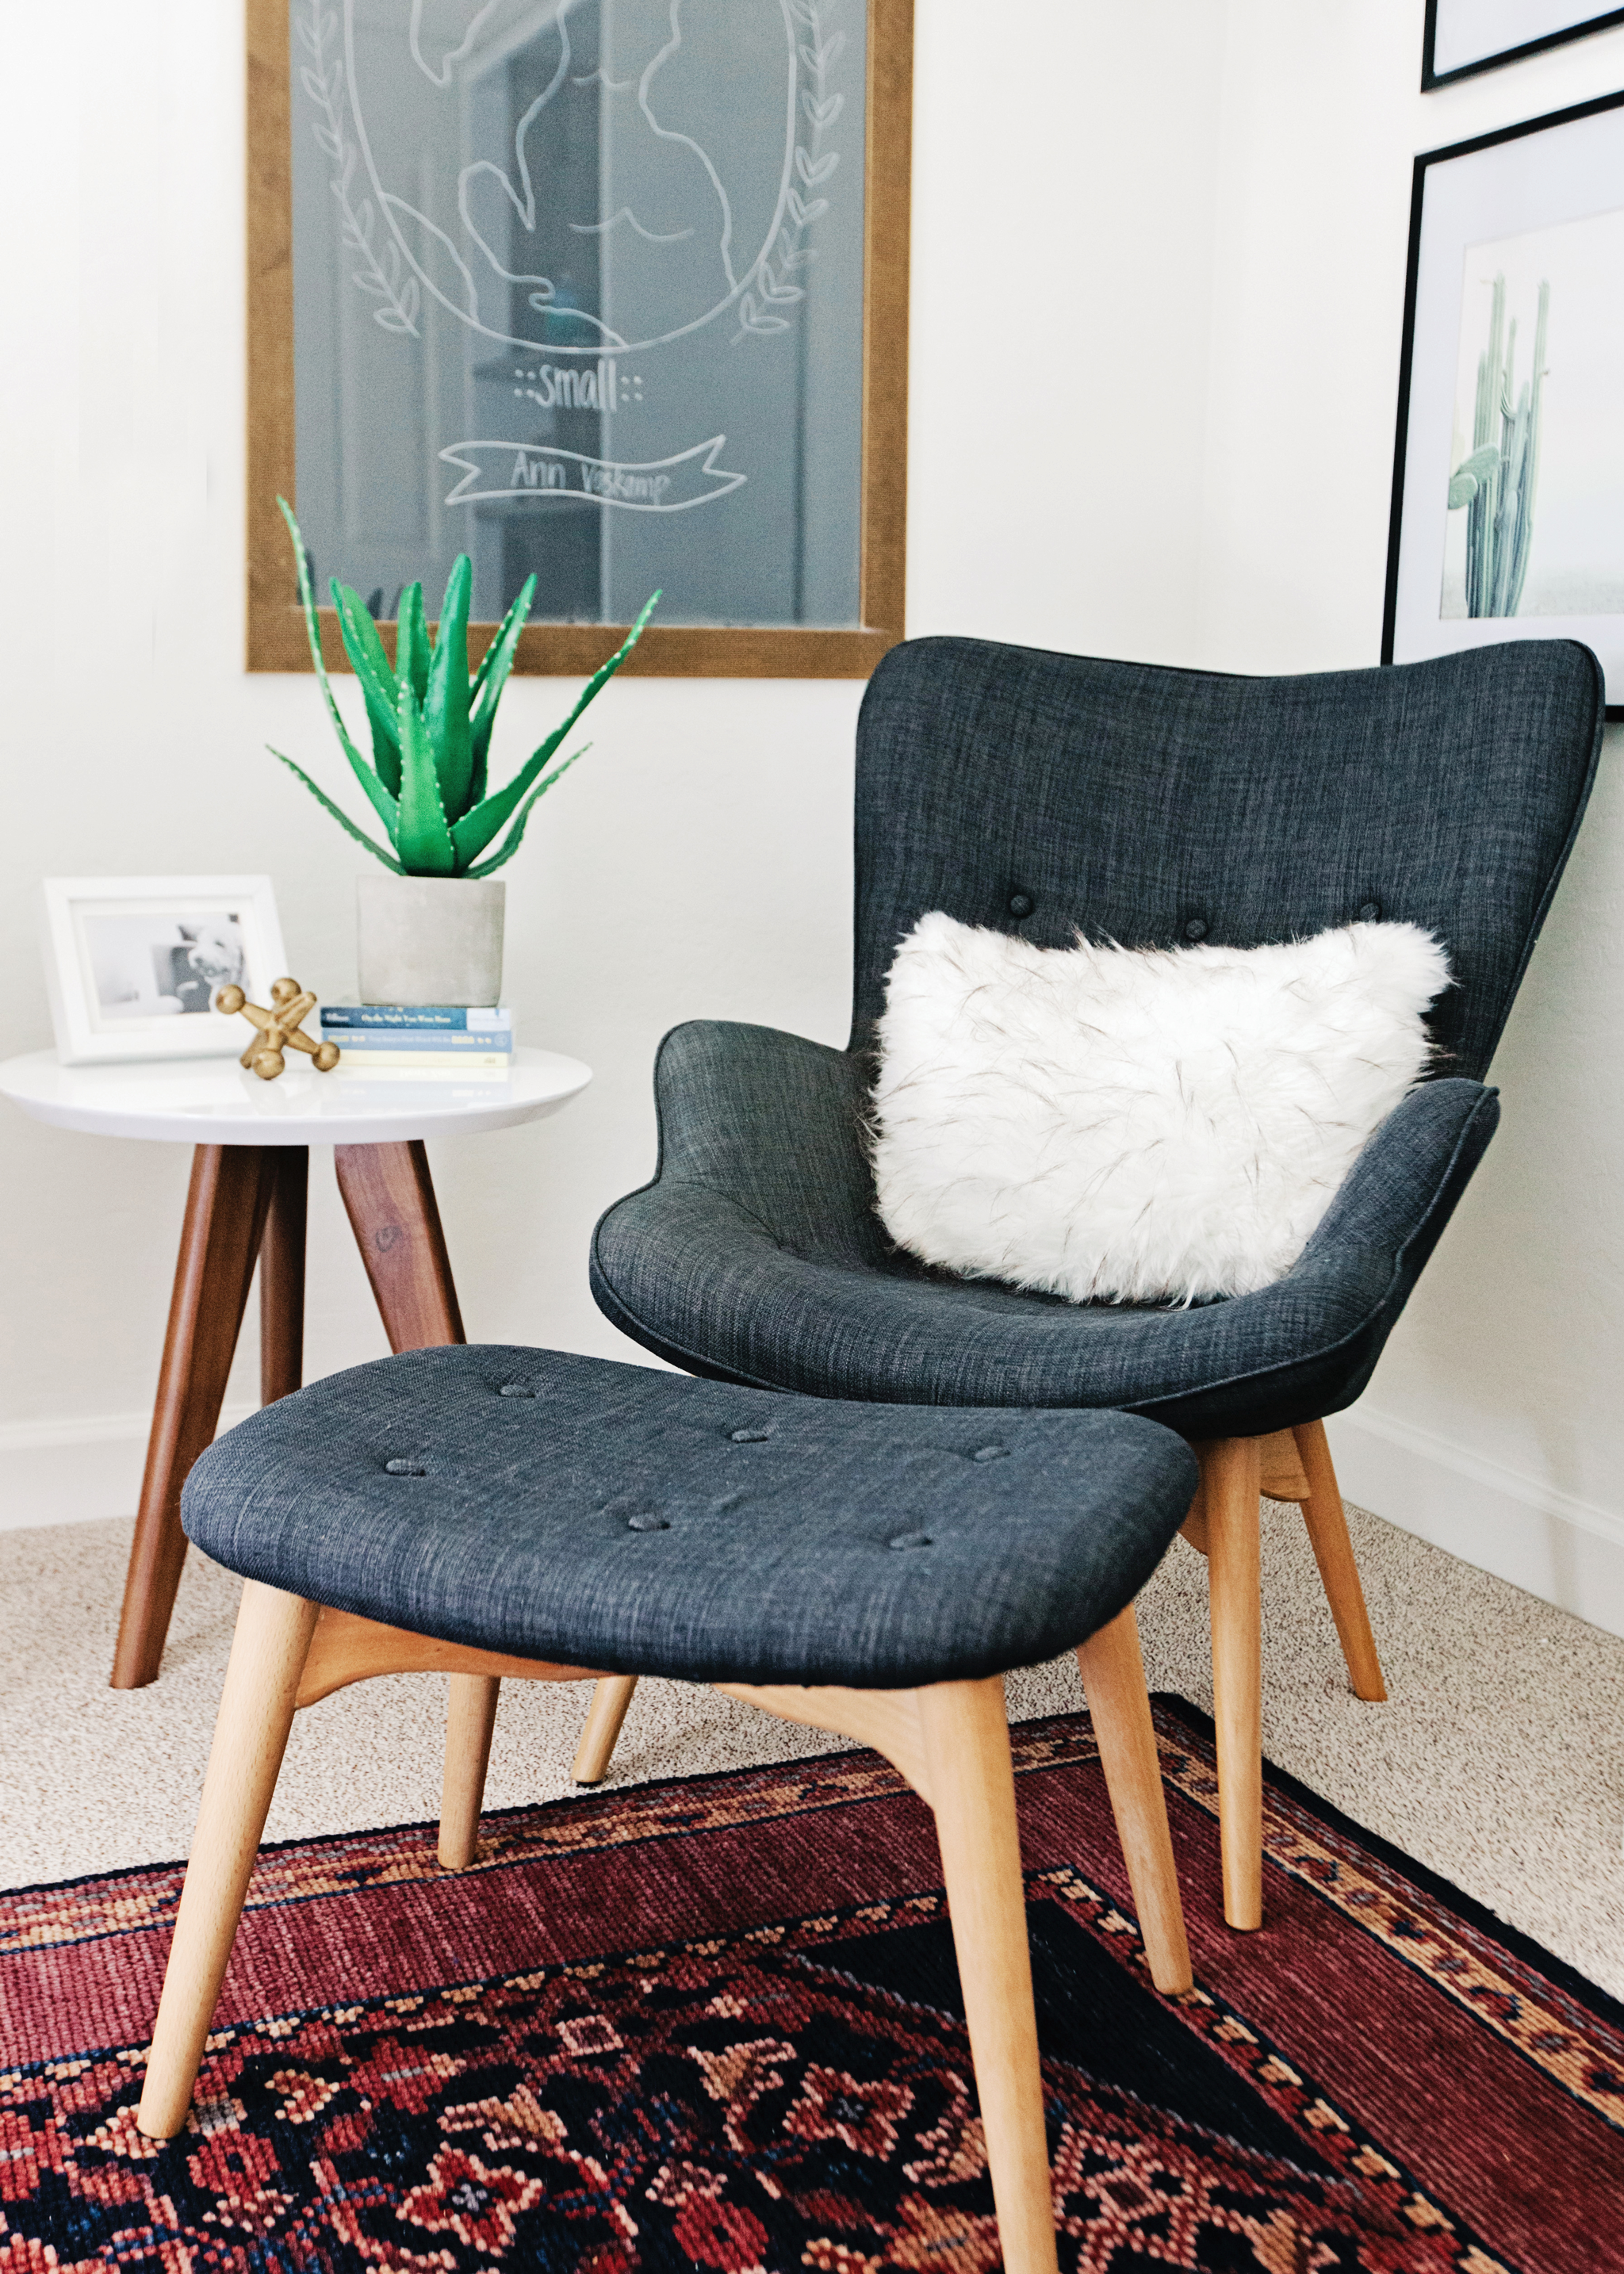 A Mid Century Modern Nursery Chair For Your Little Oneu0027s Space. Transform  This Space Into A Reading Nook For Later When They Are Old Enough For  Bedtime ...